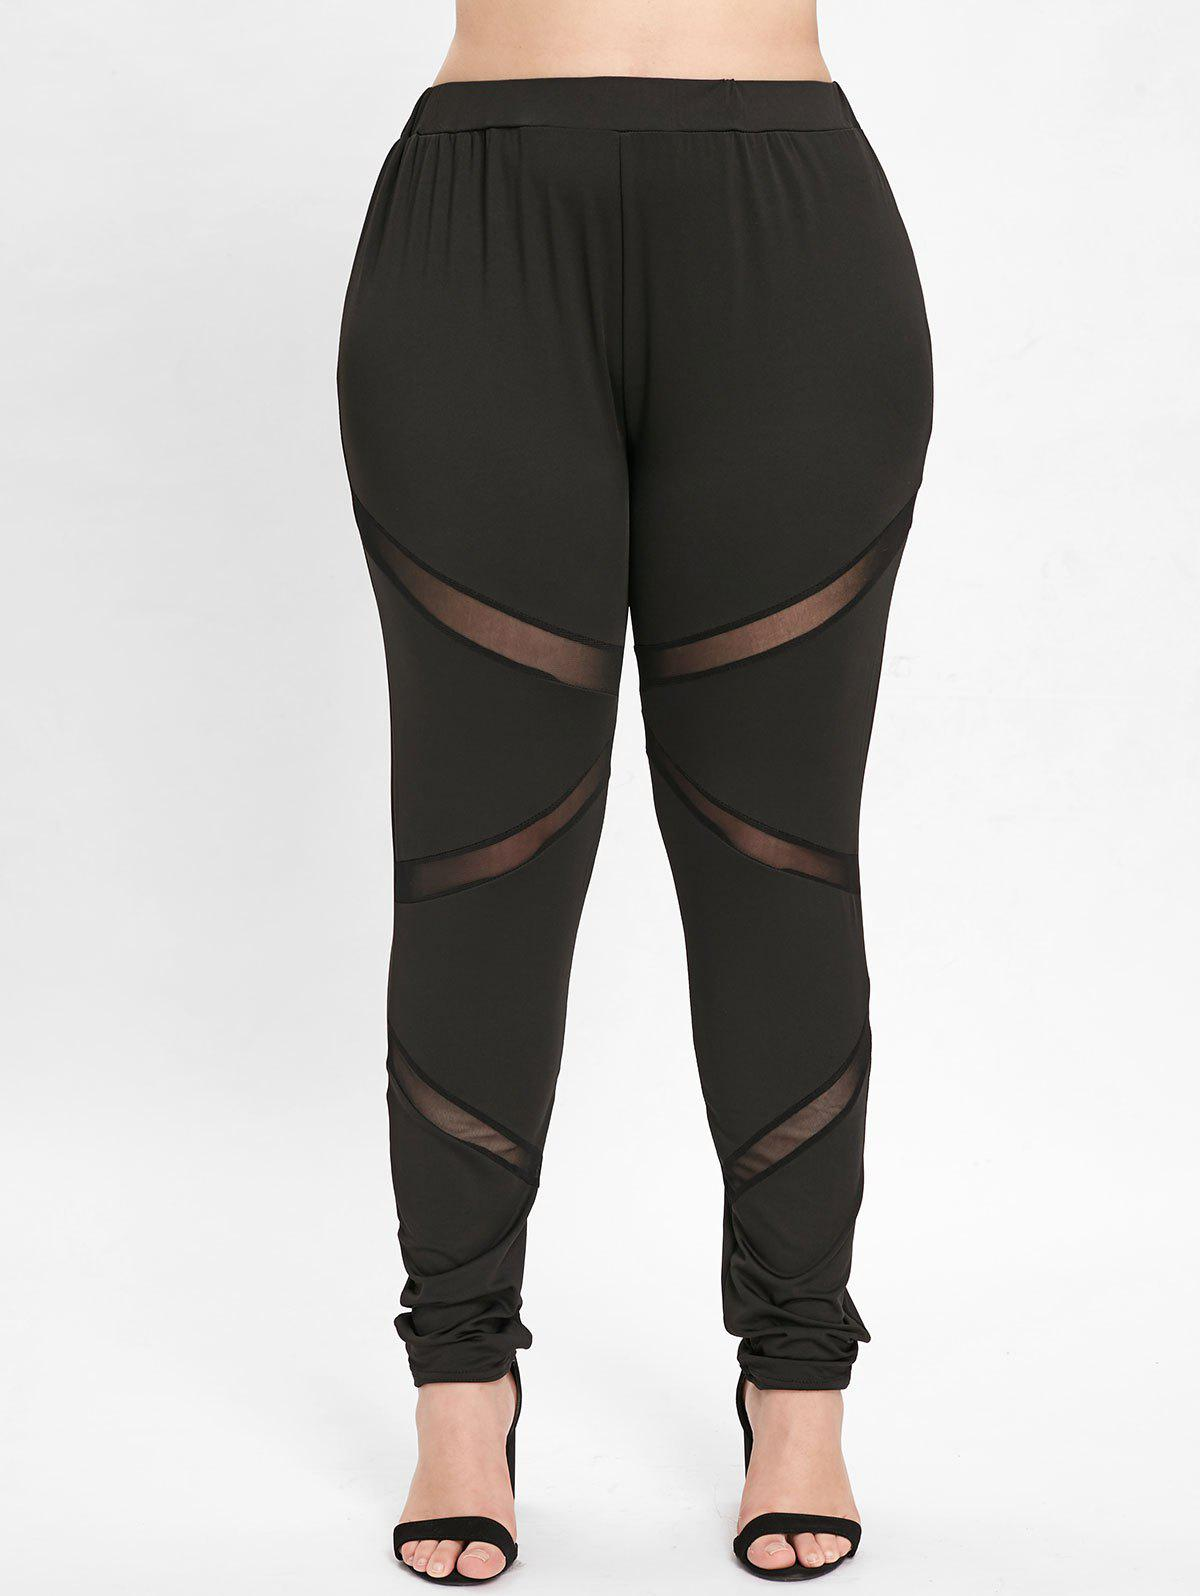 Buy Elastic Waist Plus Size Mesh Panel Leggings